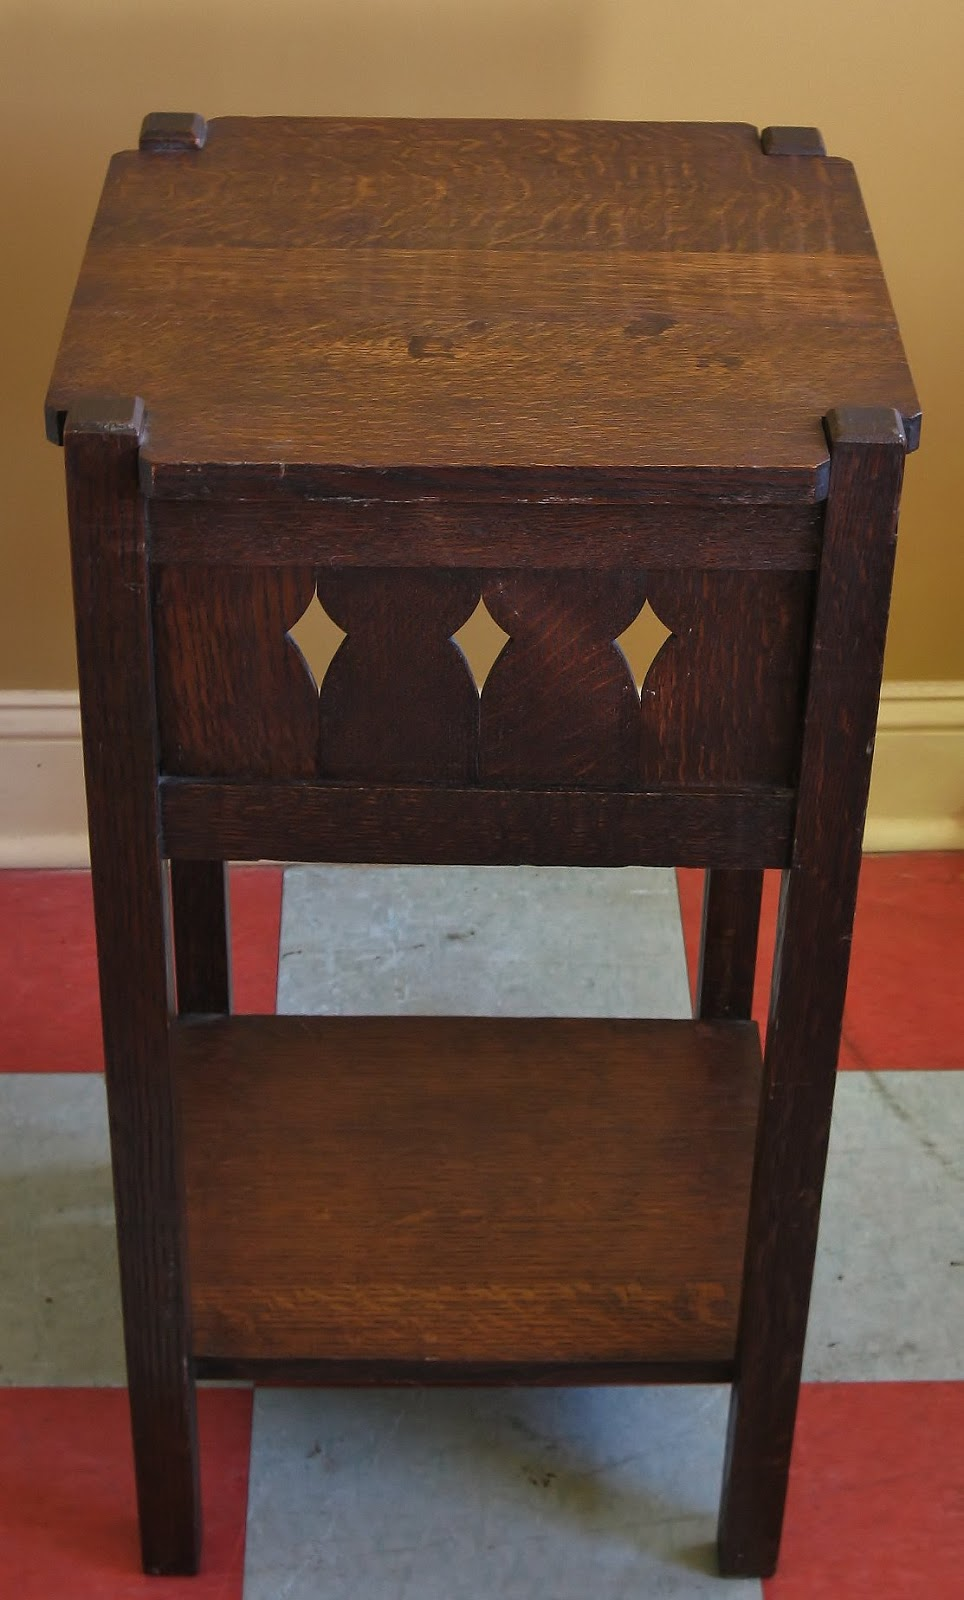 Redeux Vintage Furniture: Mission Style on Furniture Style  id=59339